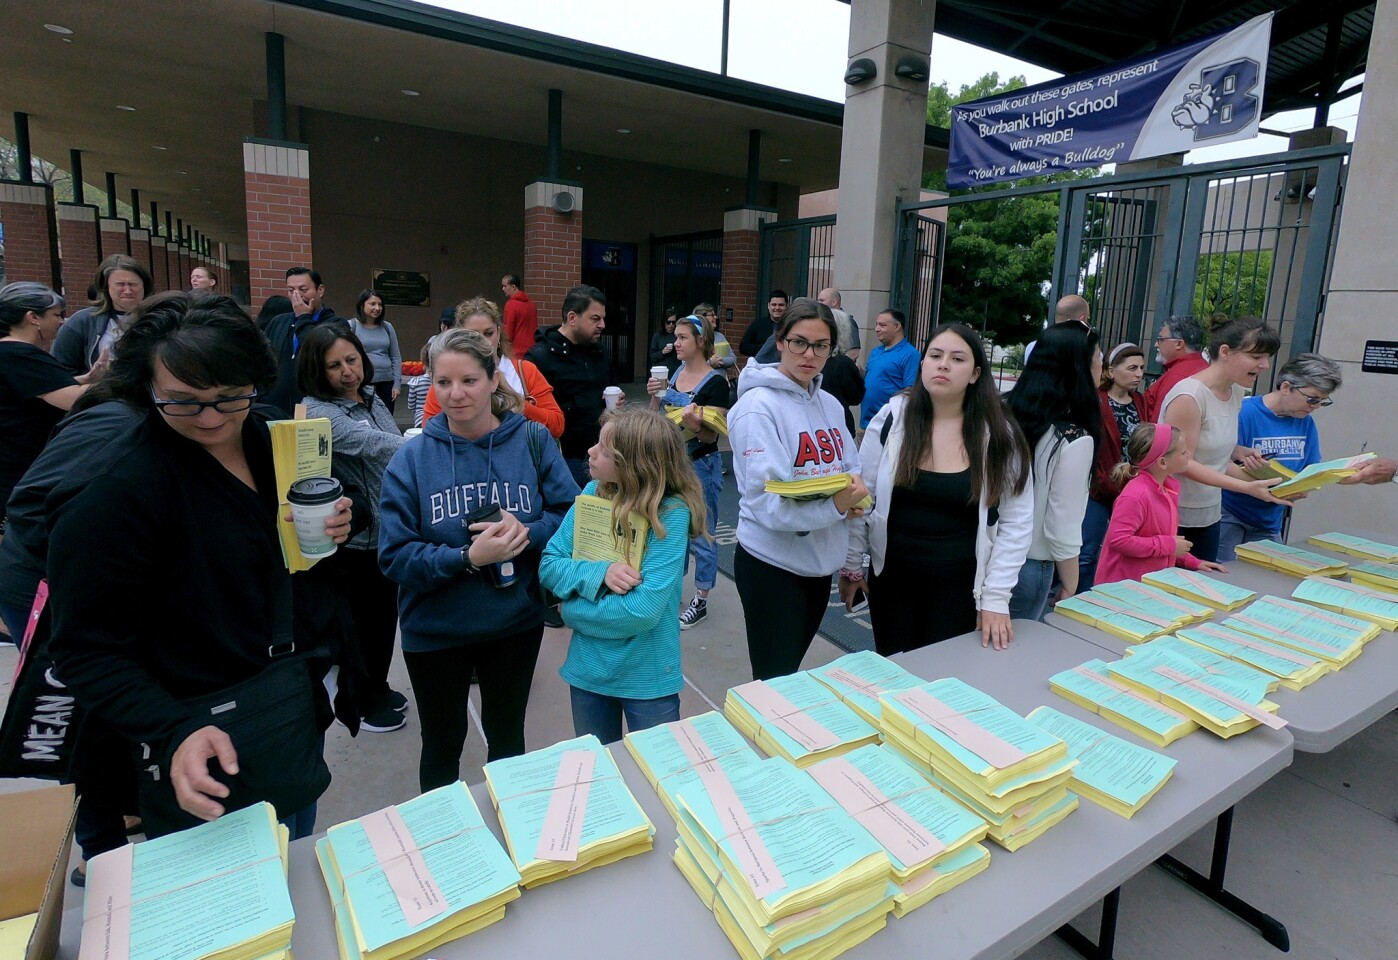 Photo Gallery: Burbank Unified rallies to inform public about budget cuts